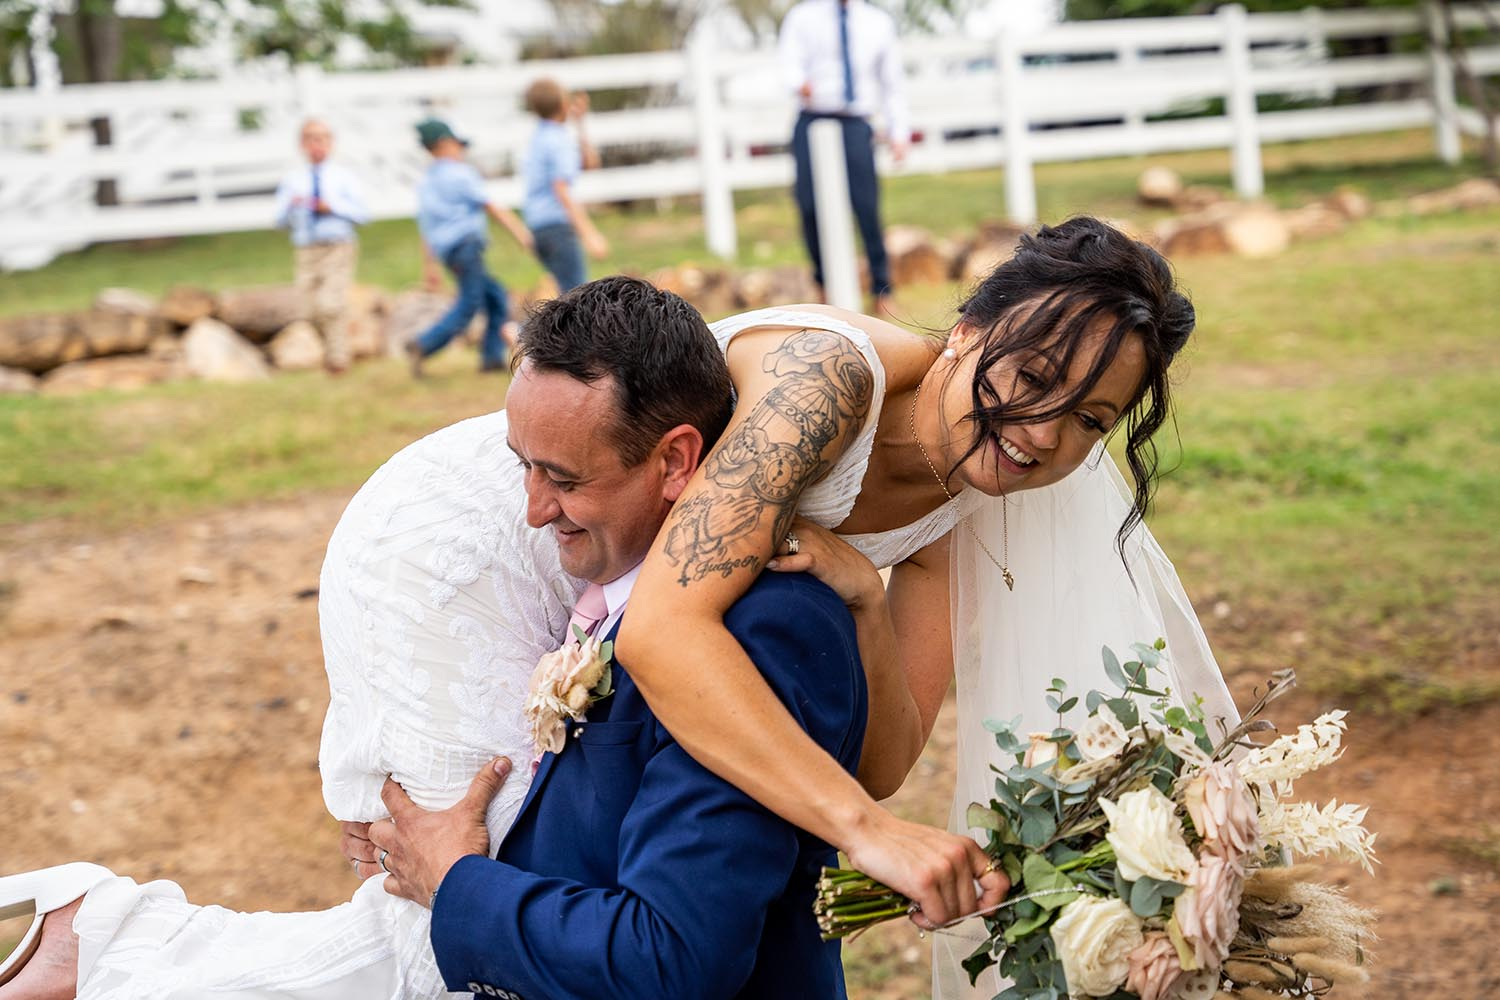 Wedding Photography - Carrying the bride